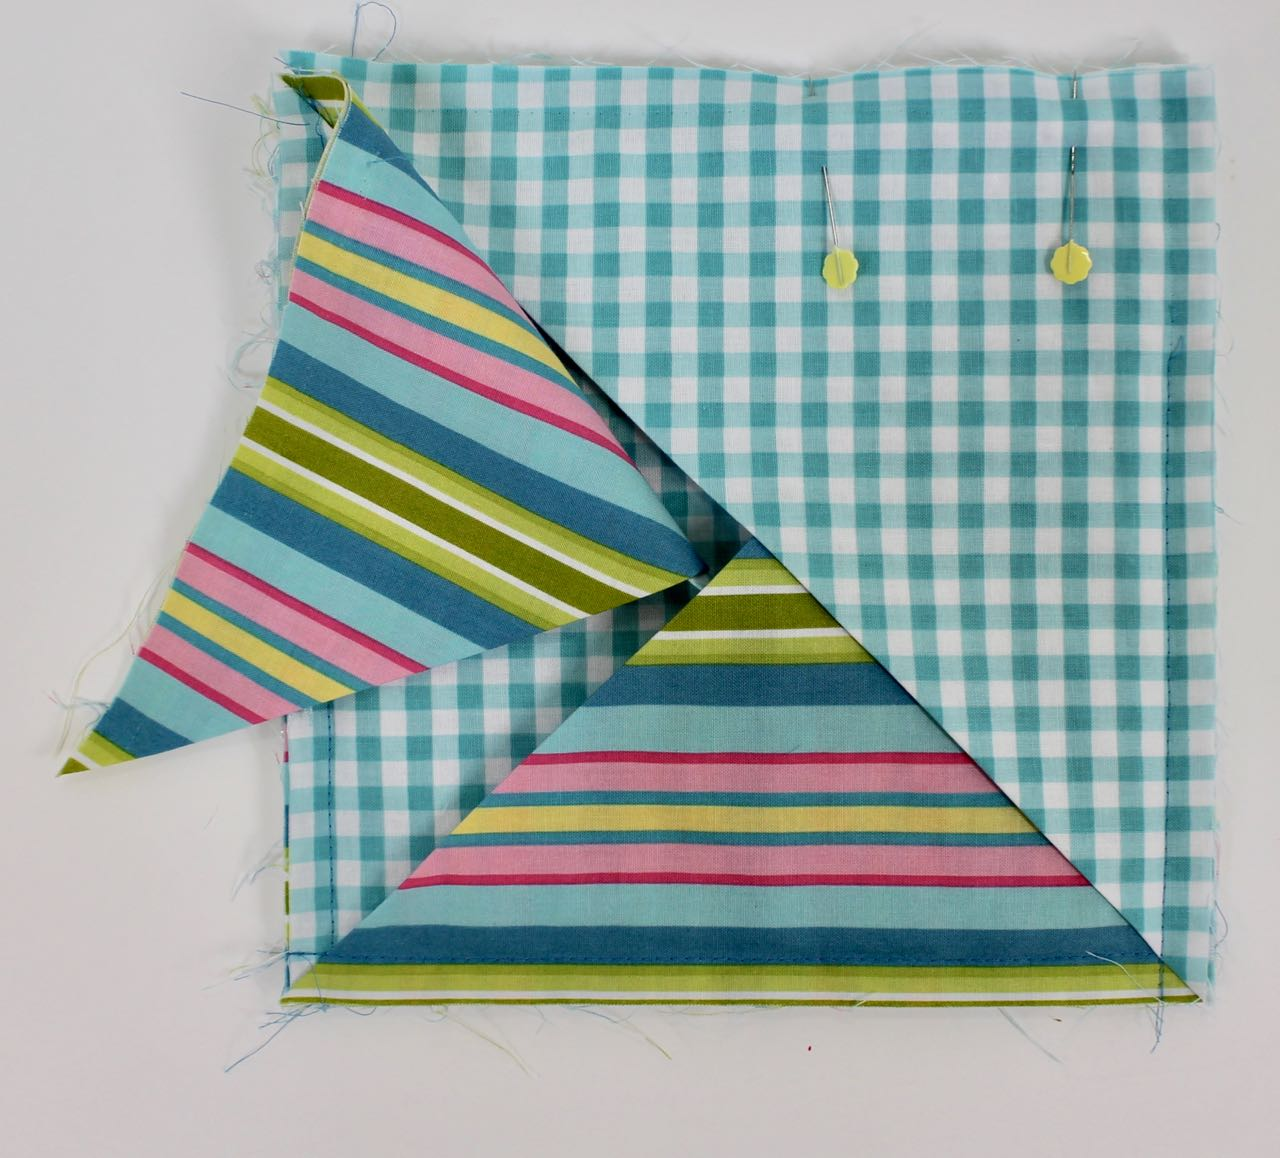 I Sew For Fun Potholder by Nancy Zieman